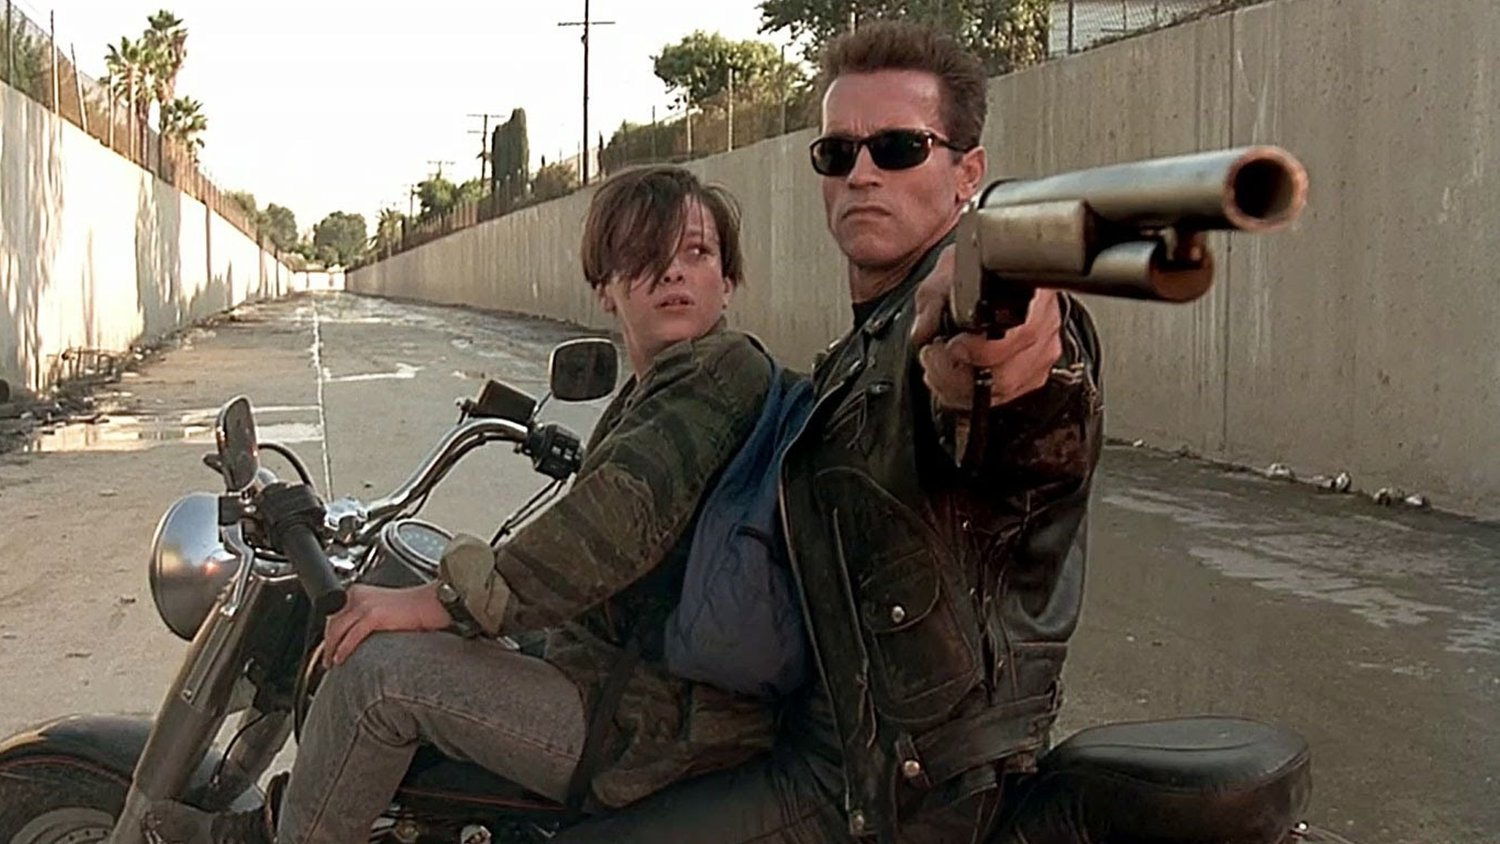 TERMINATOR 2: JUDGMENT DAY Returns to Theaters in 3D This Summer!